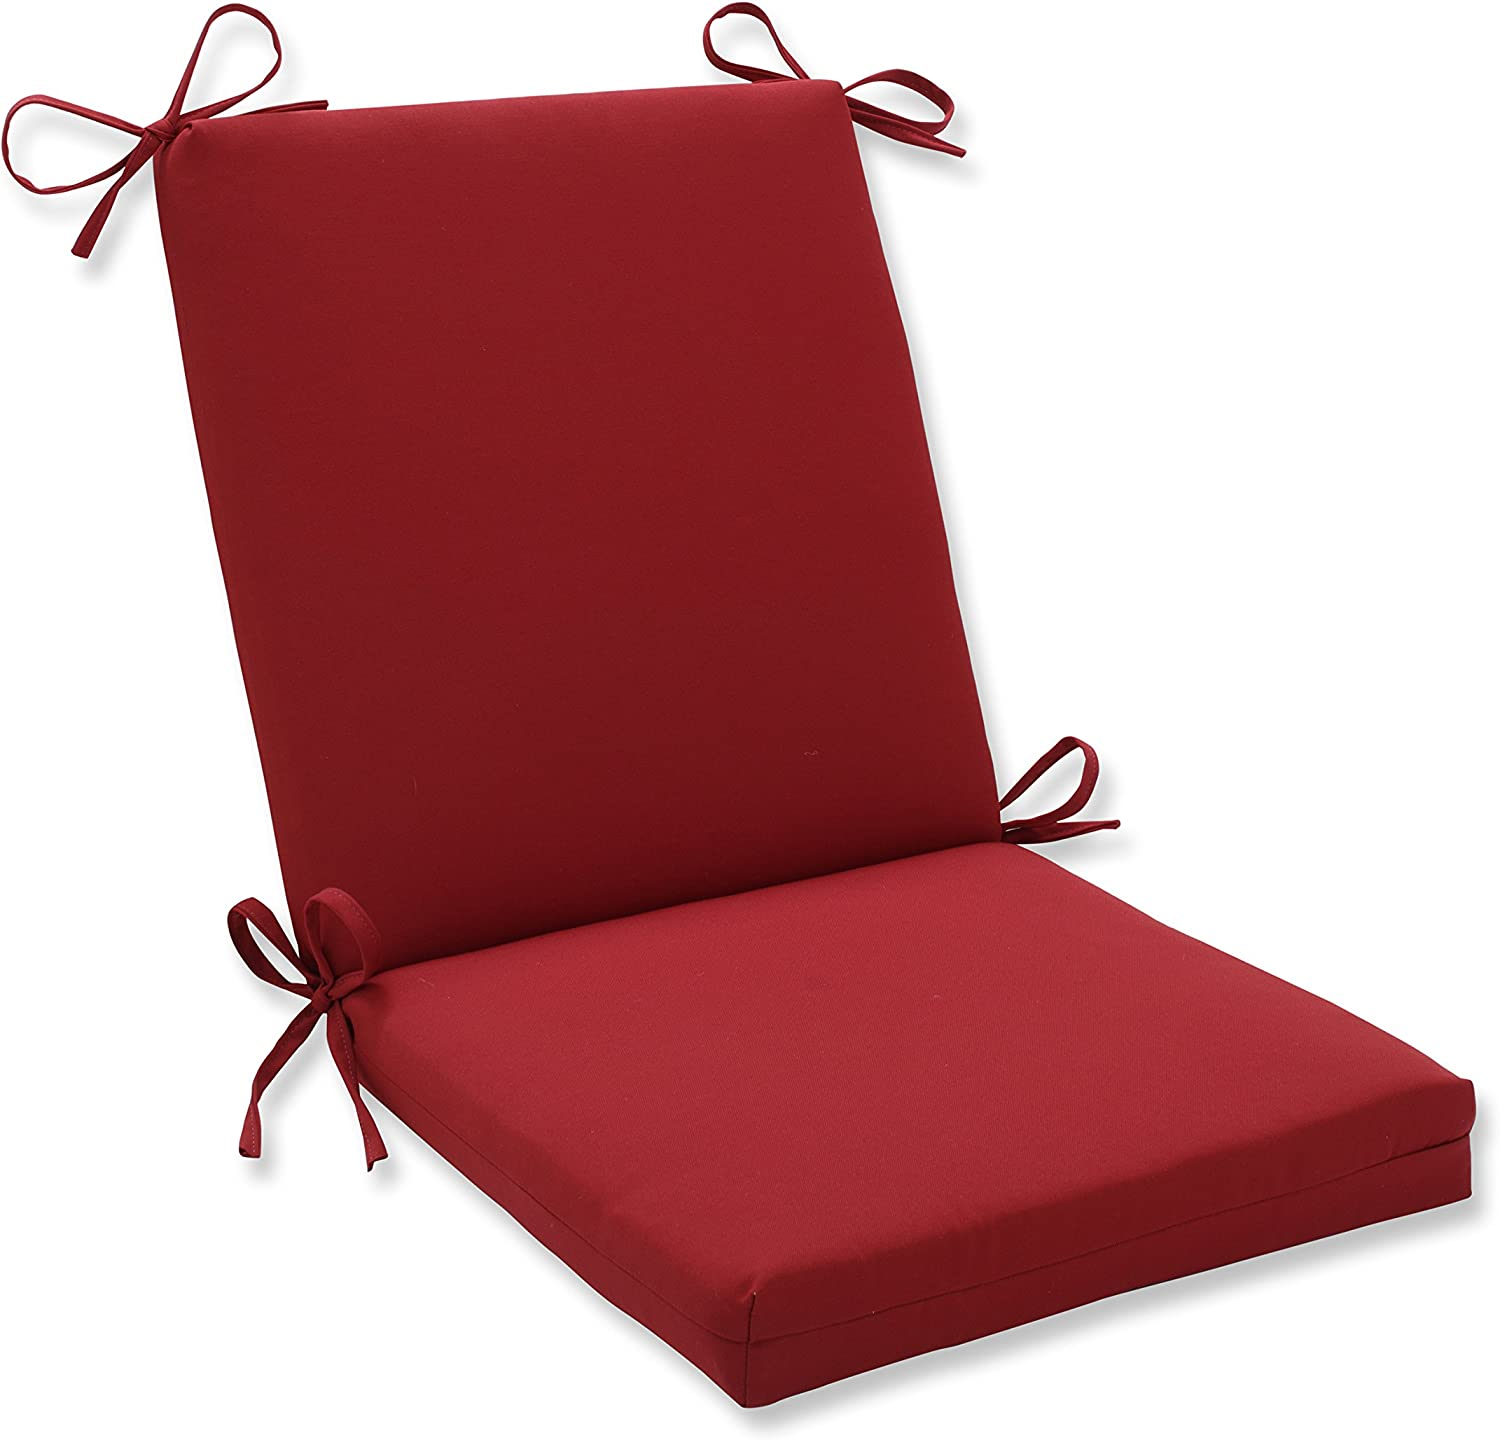 """Pillow Perfect Outdoor/Indoor Pompeii Square Corner Chair Cushion, 36.5"""" x 18"""", Red: Home & Kitchen"""